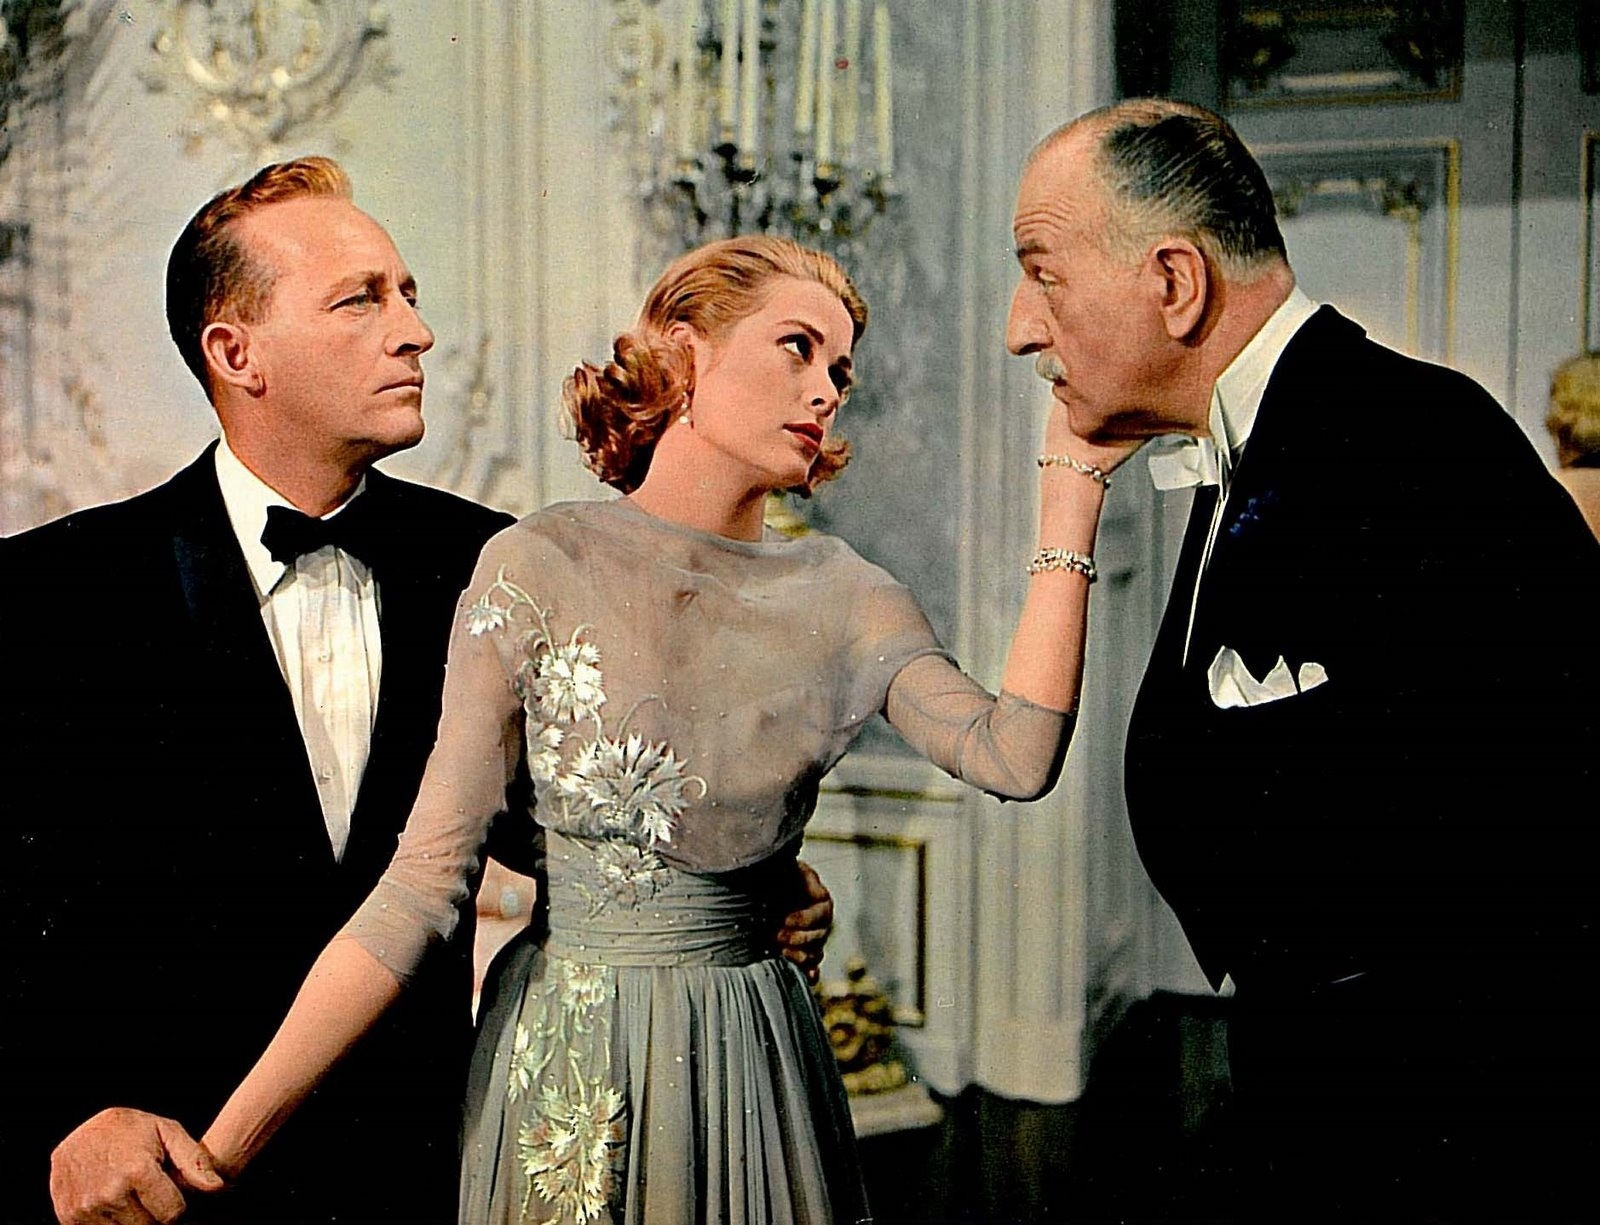 High Society 1950s film fashion